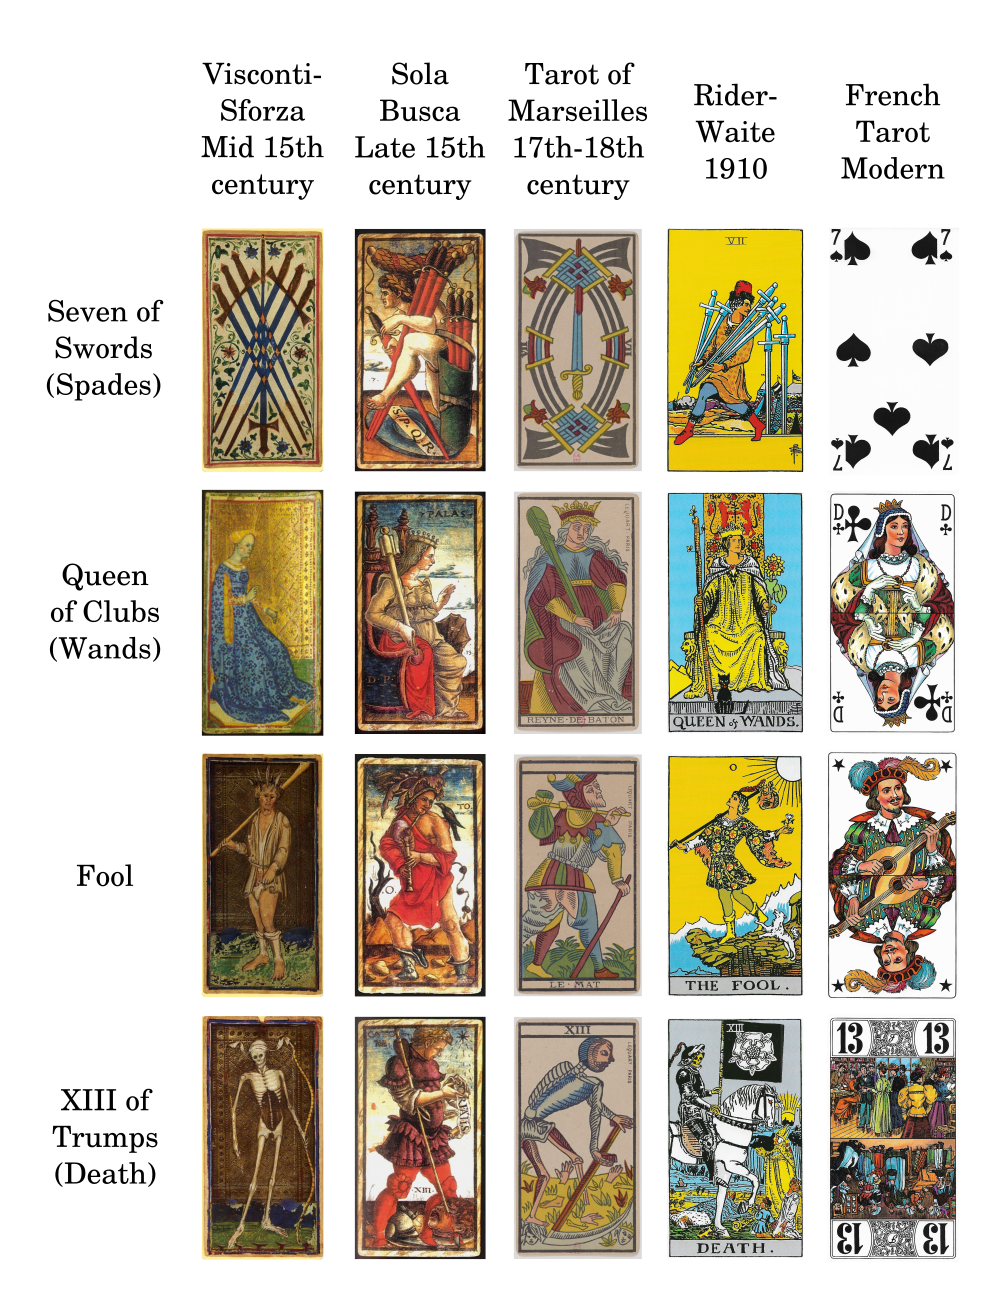 Evolution of Tarot cards